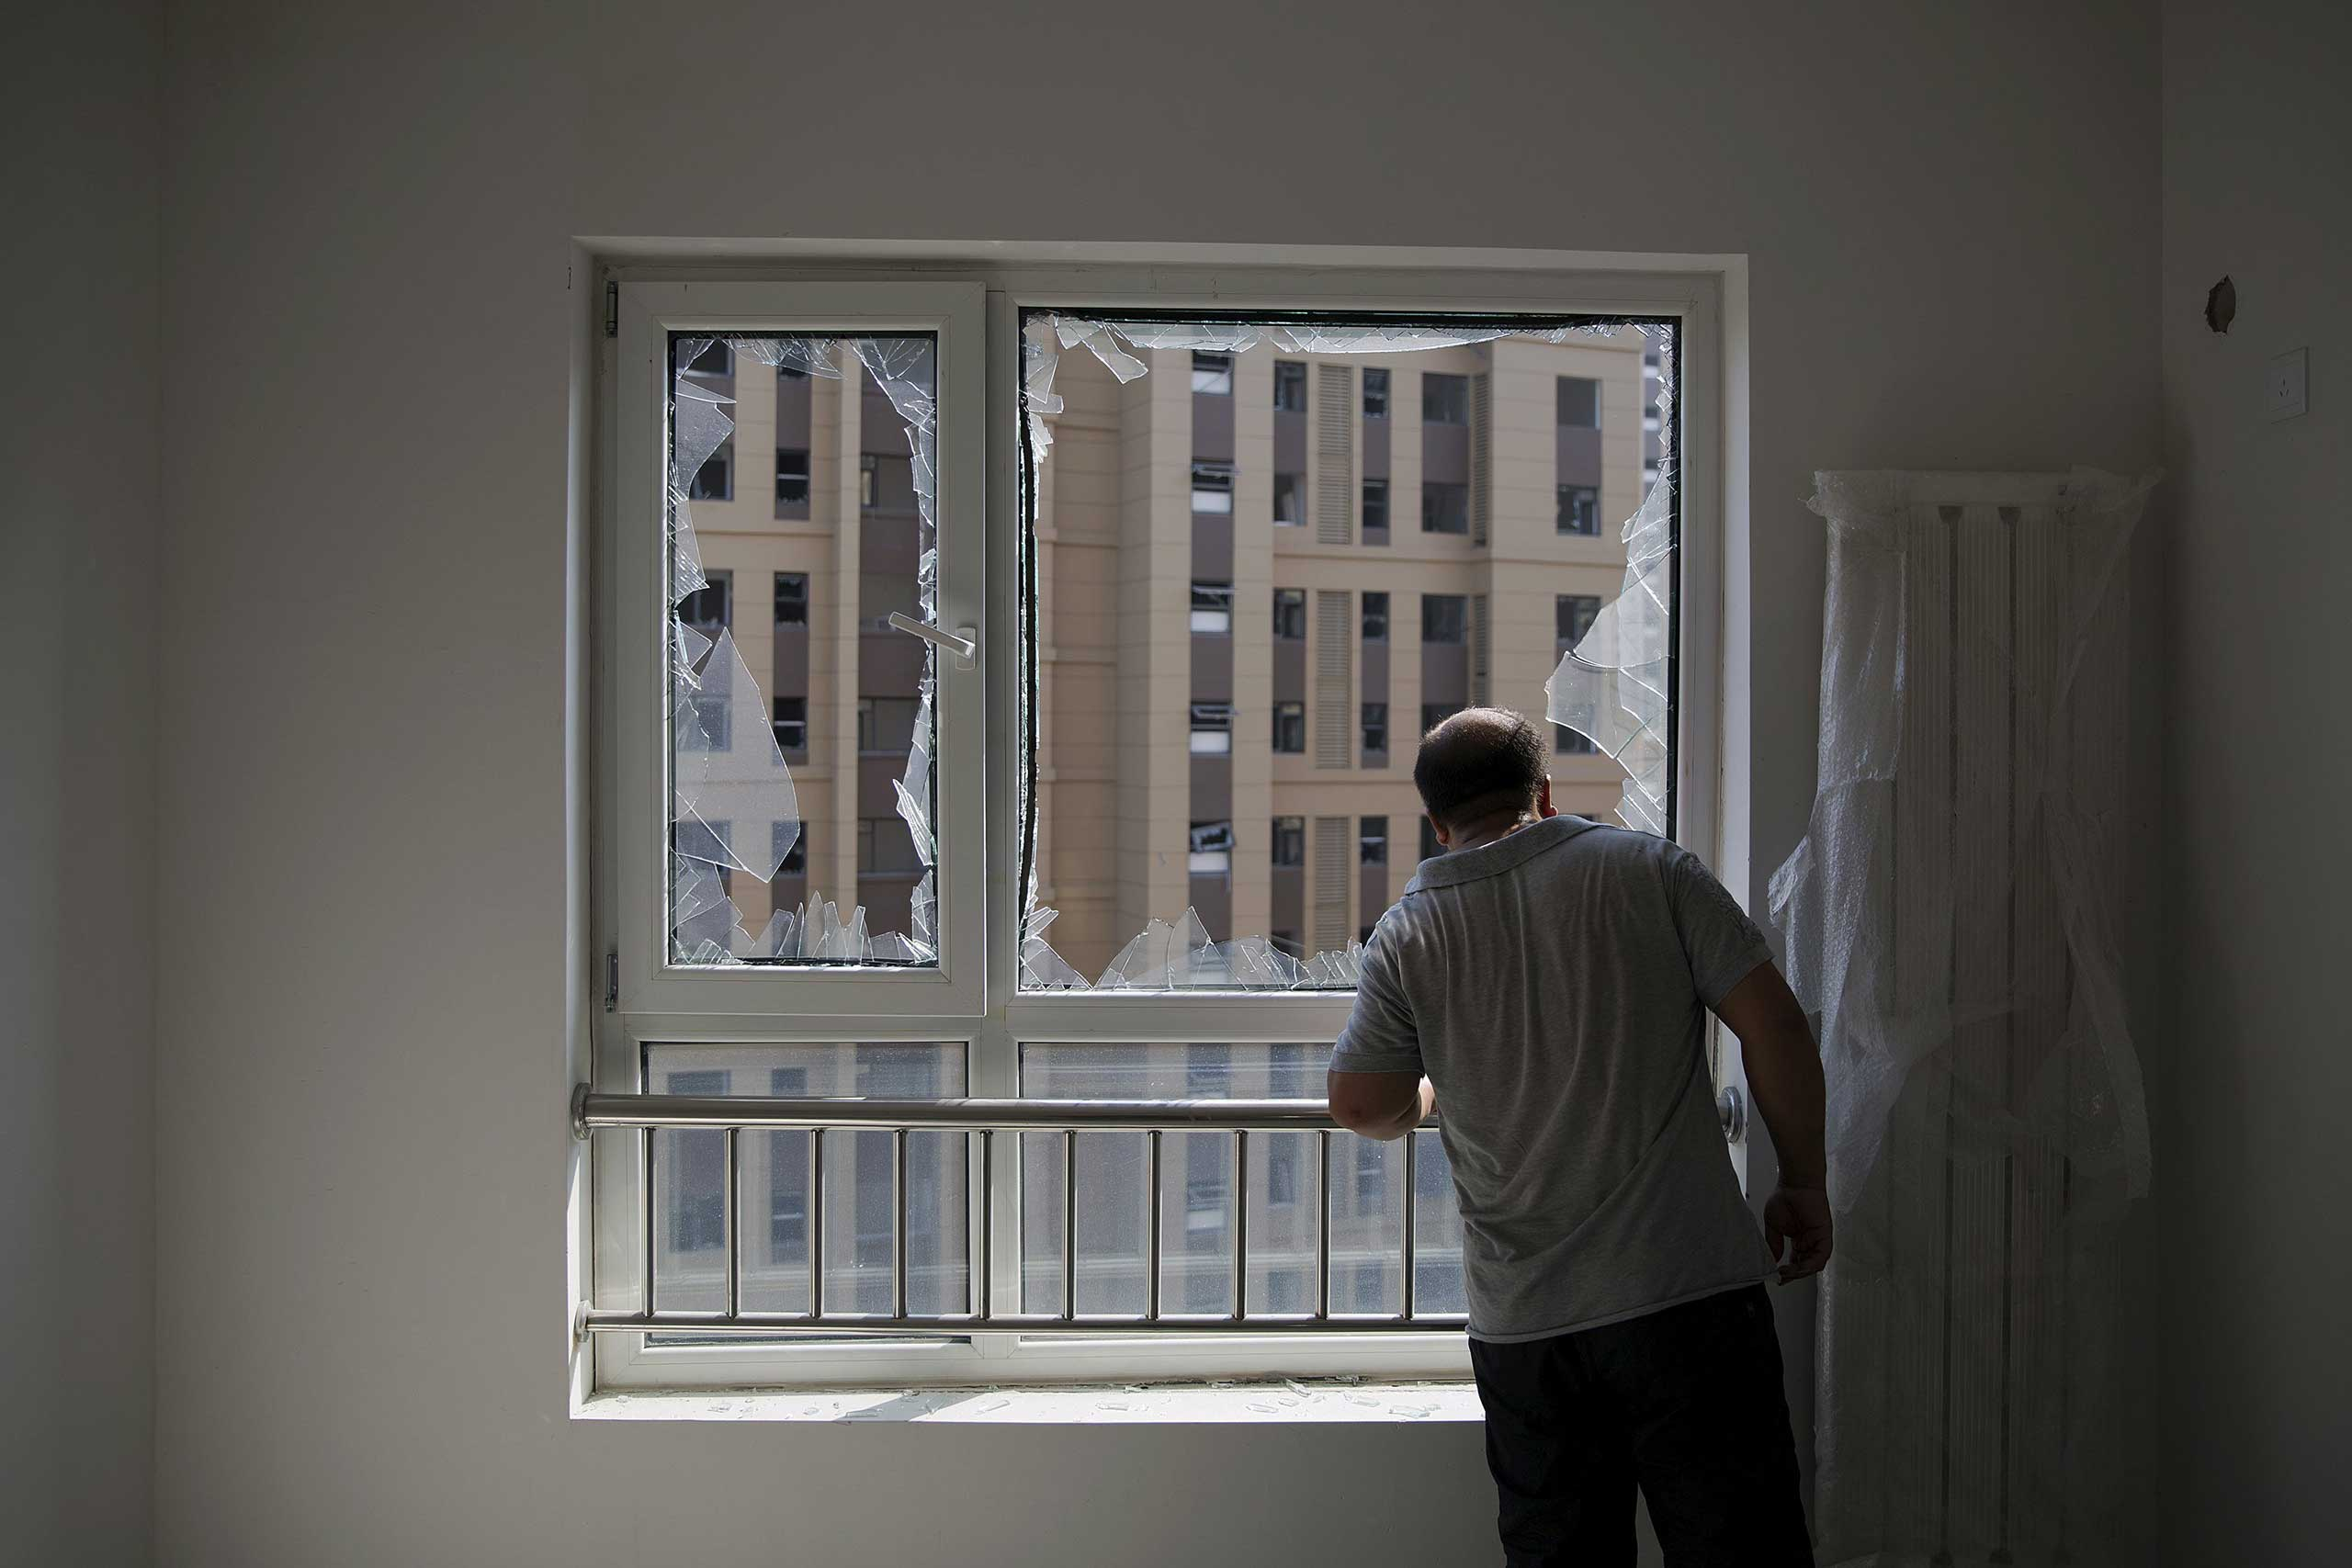 A man looks out from inside a damaged residential building near the site of the explosions at the Binhai new district, Tianjin, on Aug. 13, 2015.